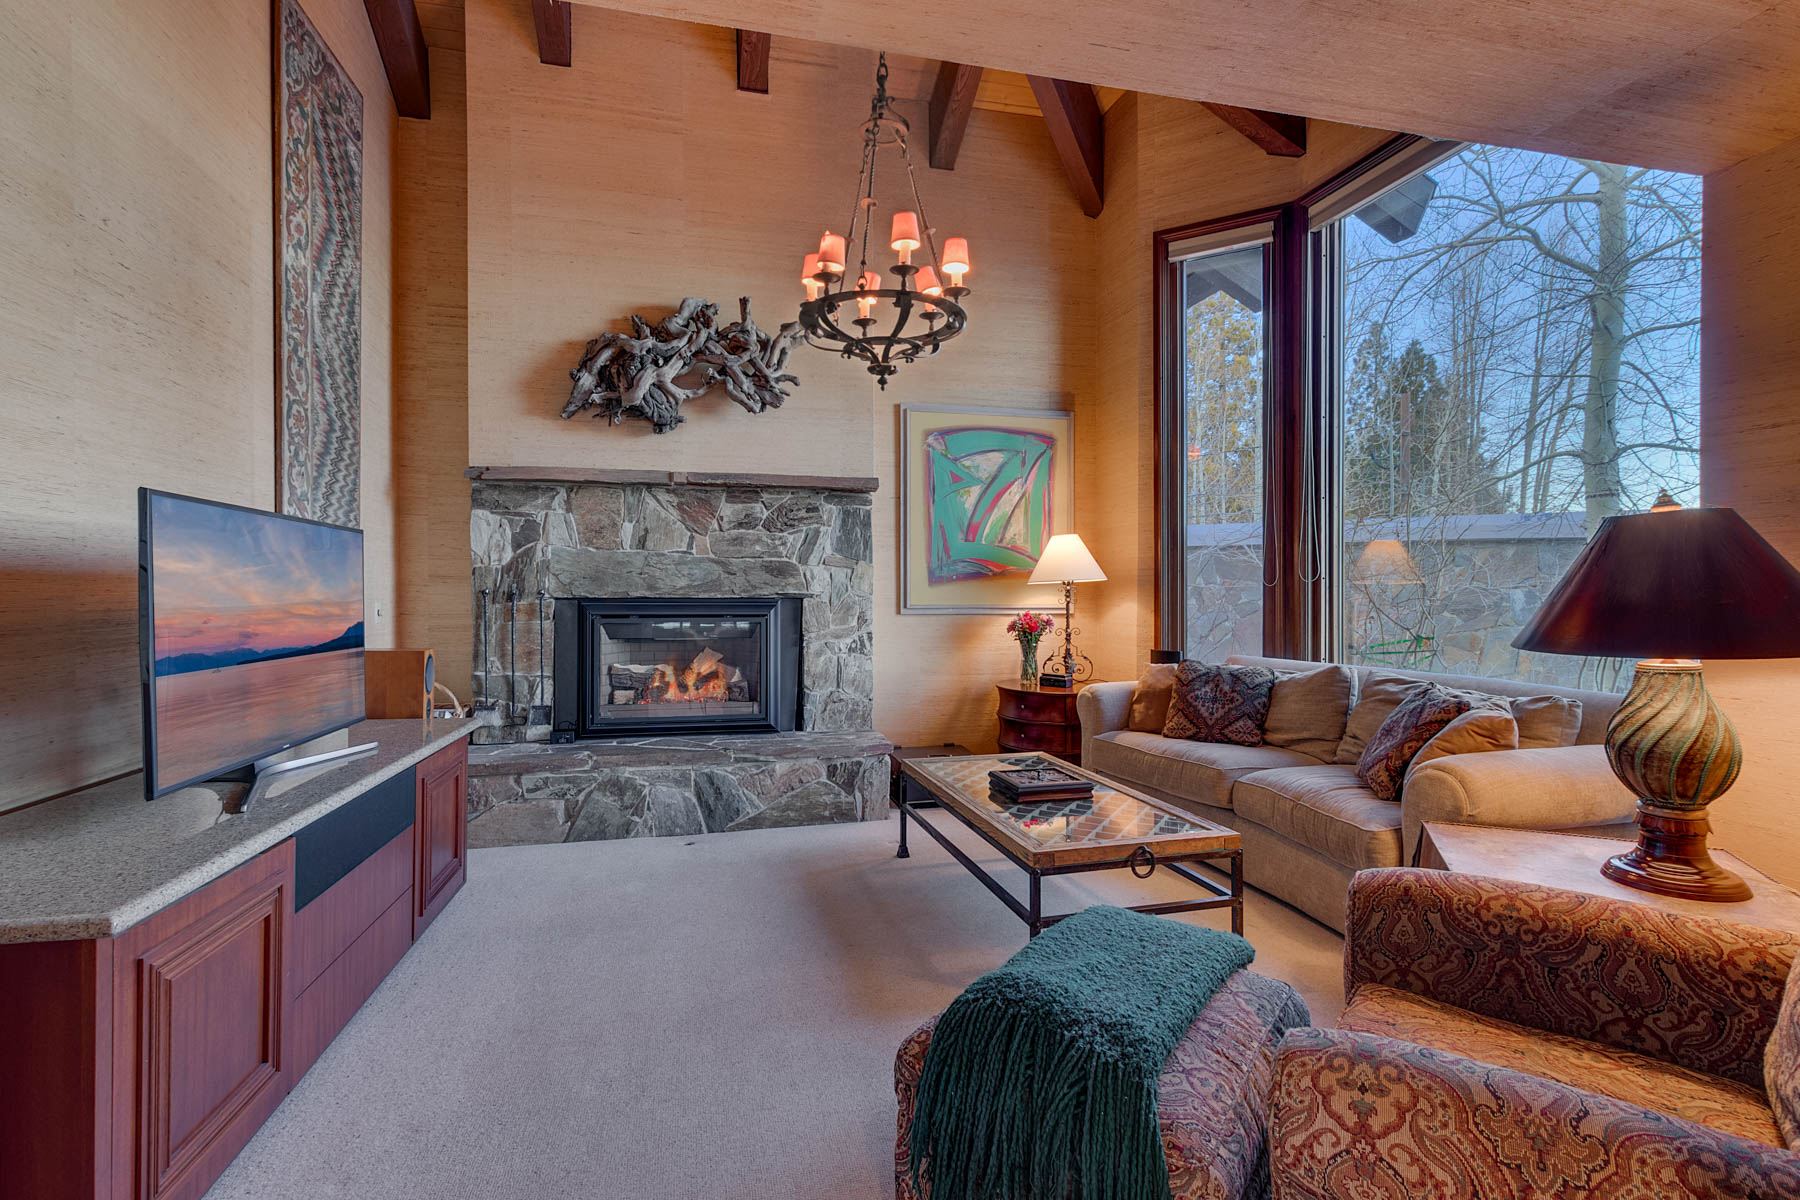 Additional photo for property listing at Concierge Living at Lake Tahoe 4000 W Lake Blvd. Residence 20 Homewood, California 96141 United States